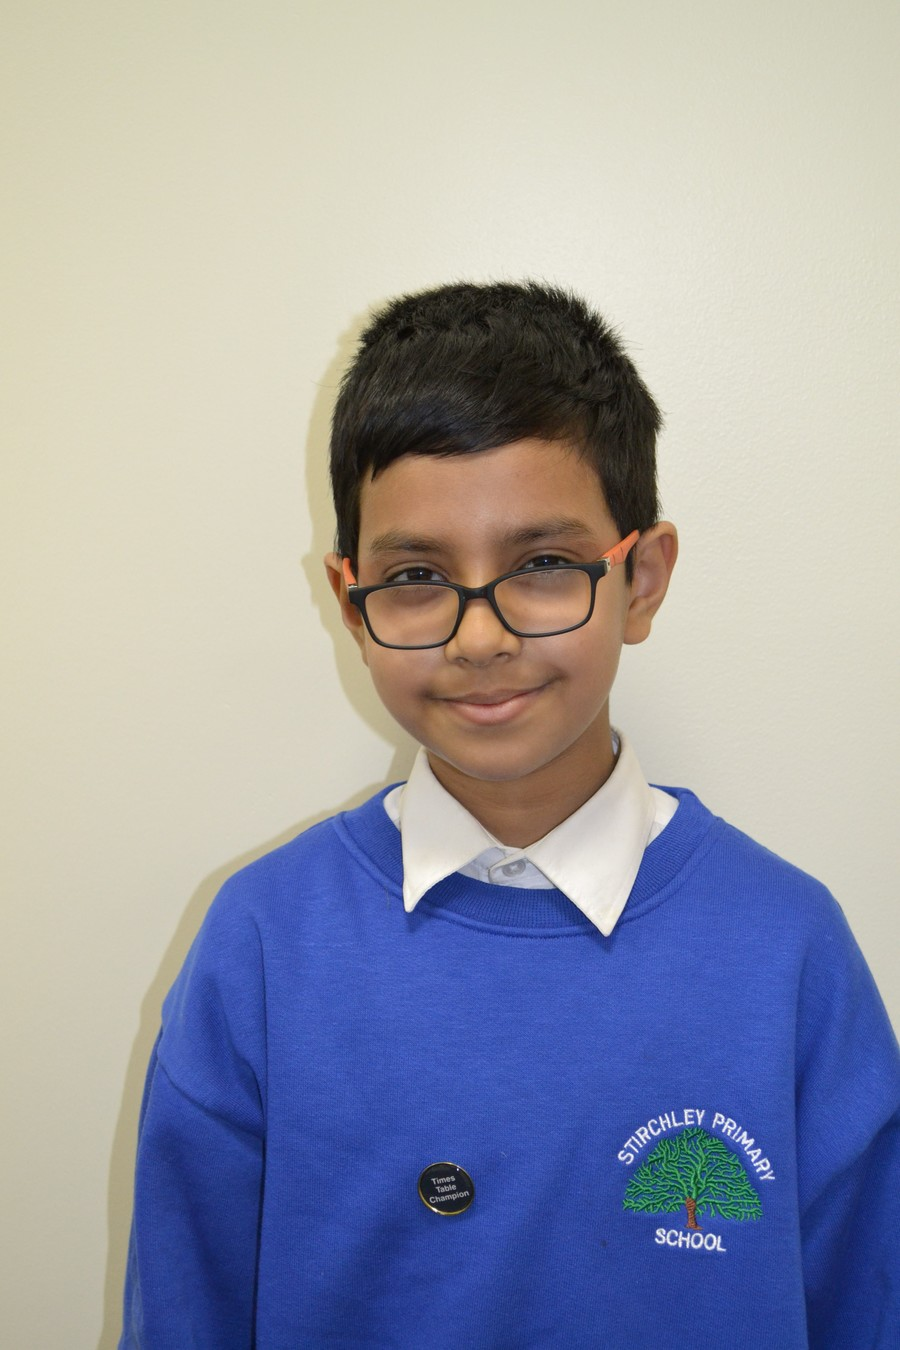 Well done Syed!